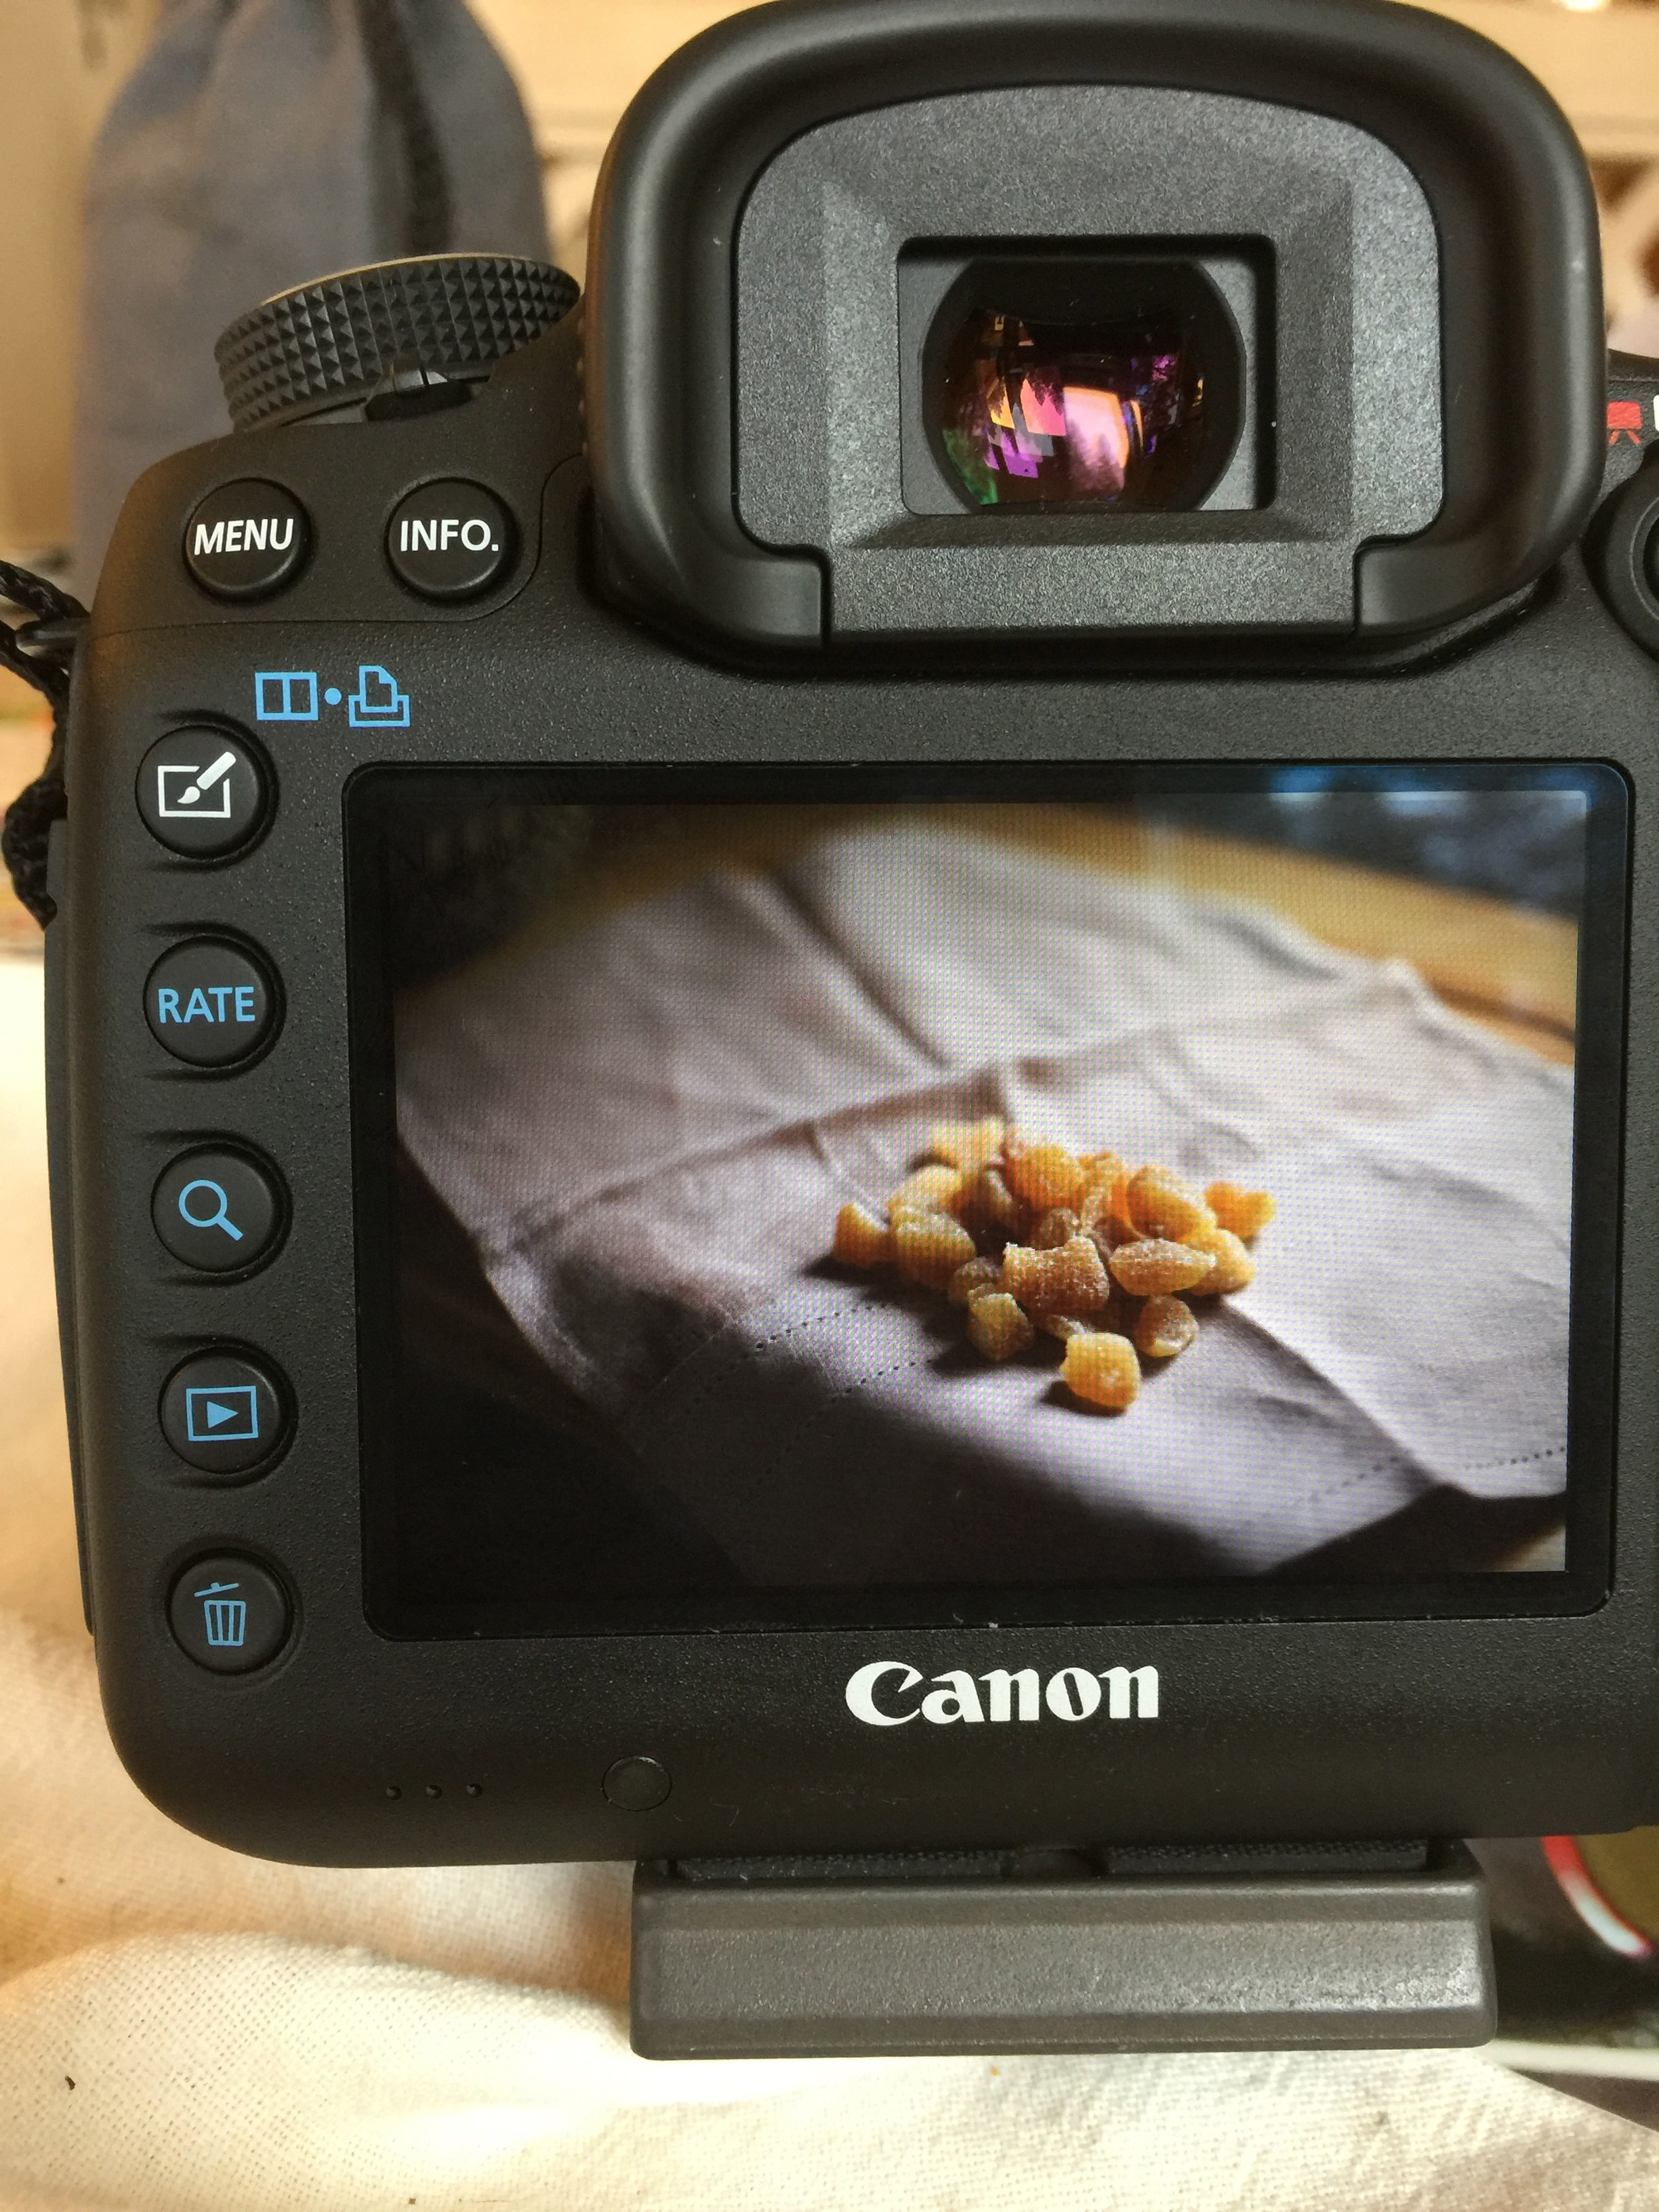 a Canon camera that shows a viewfinder image of chopped ginger candy on a cloth napkin.